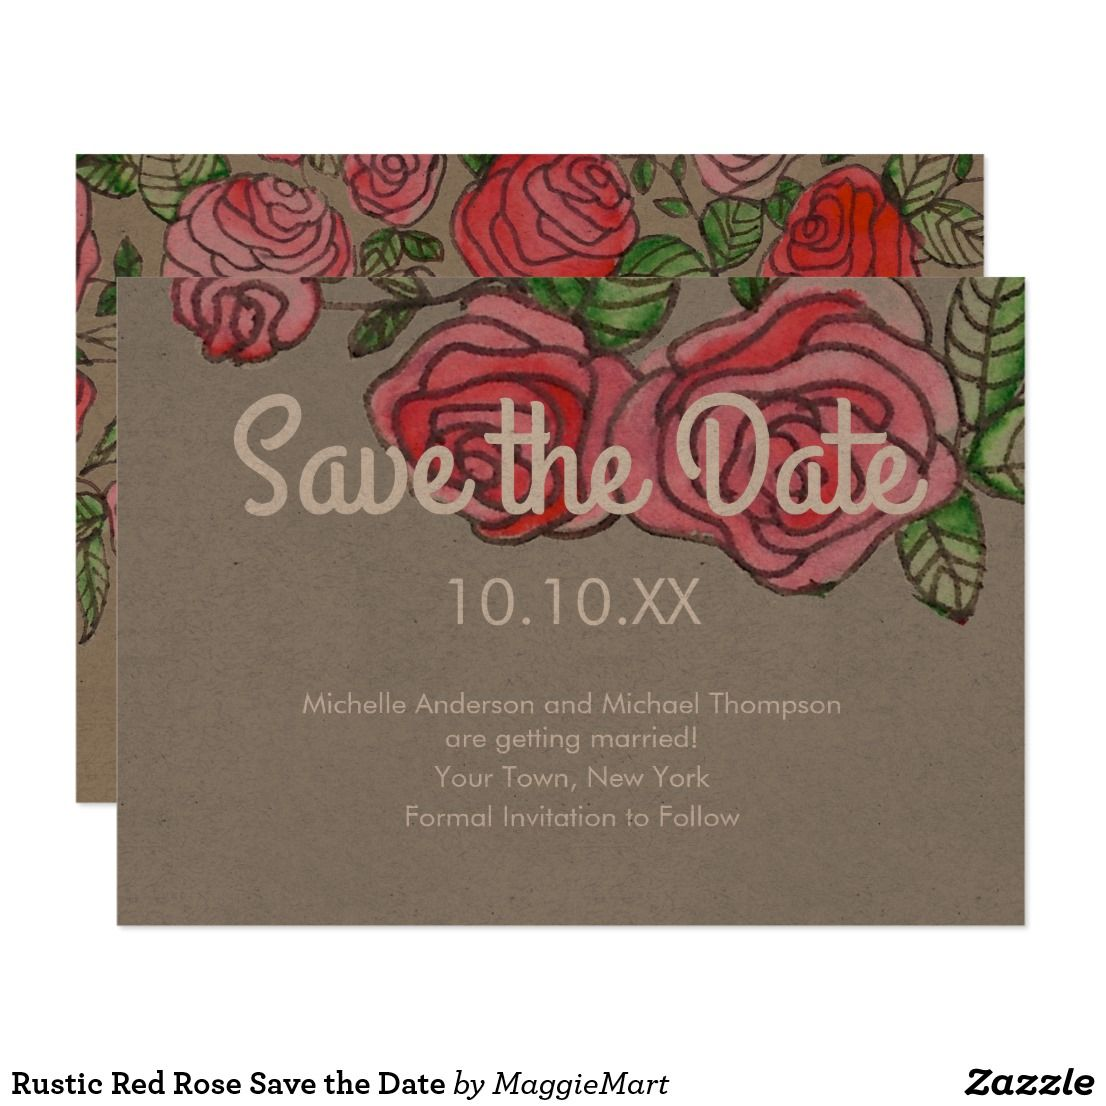 Rustic Red Rose Save the Date Invitation   Pinterest